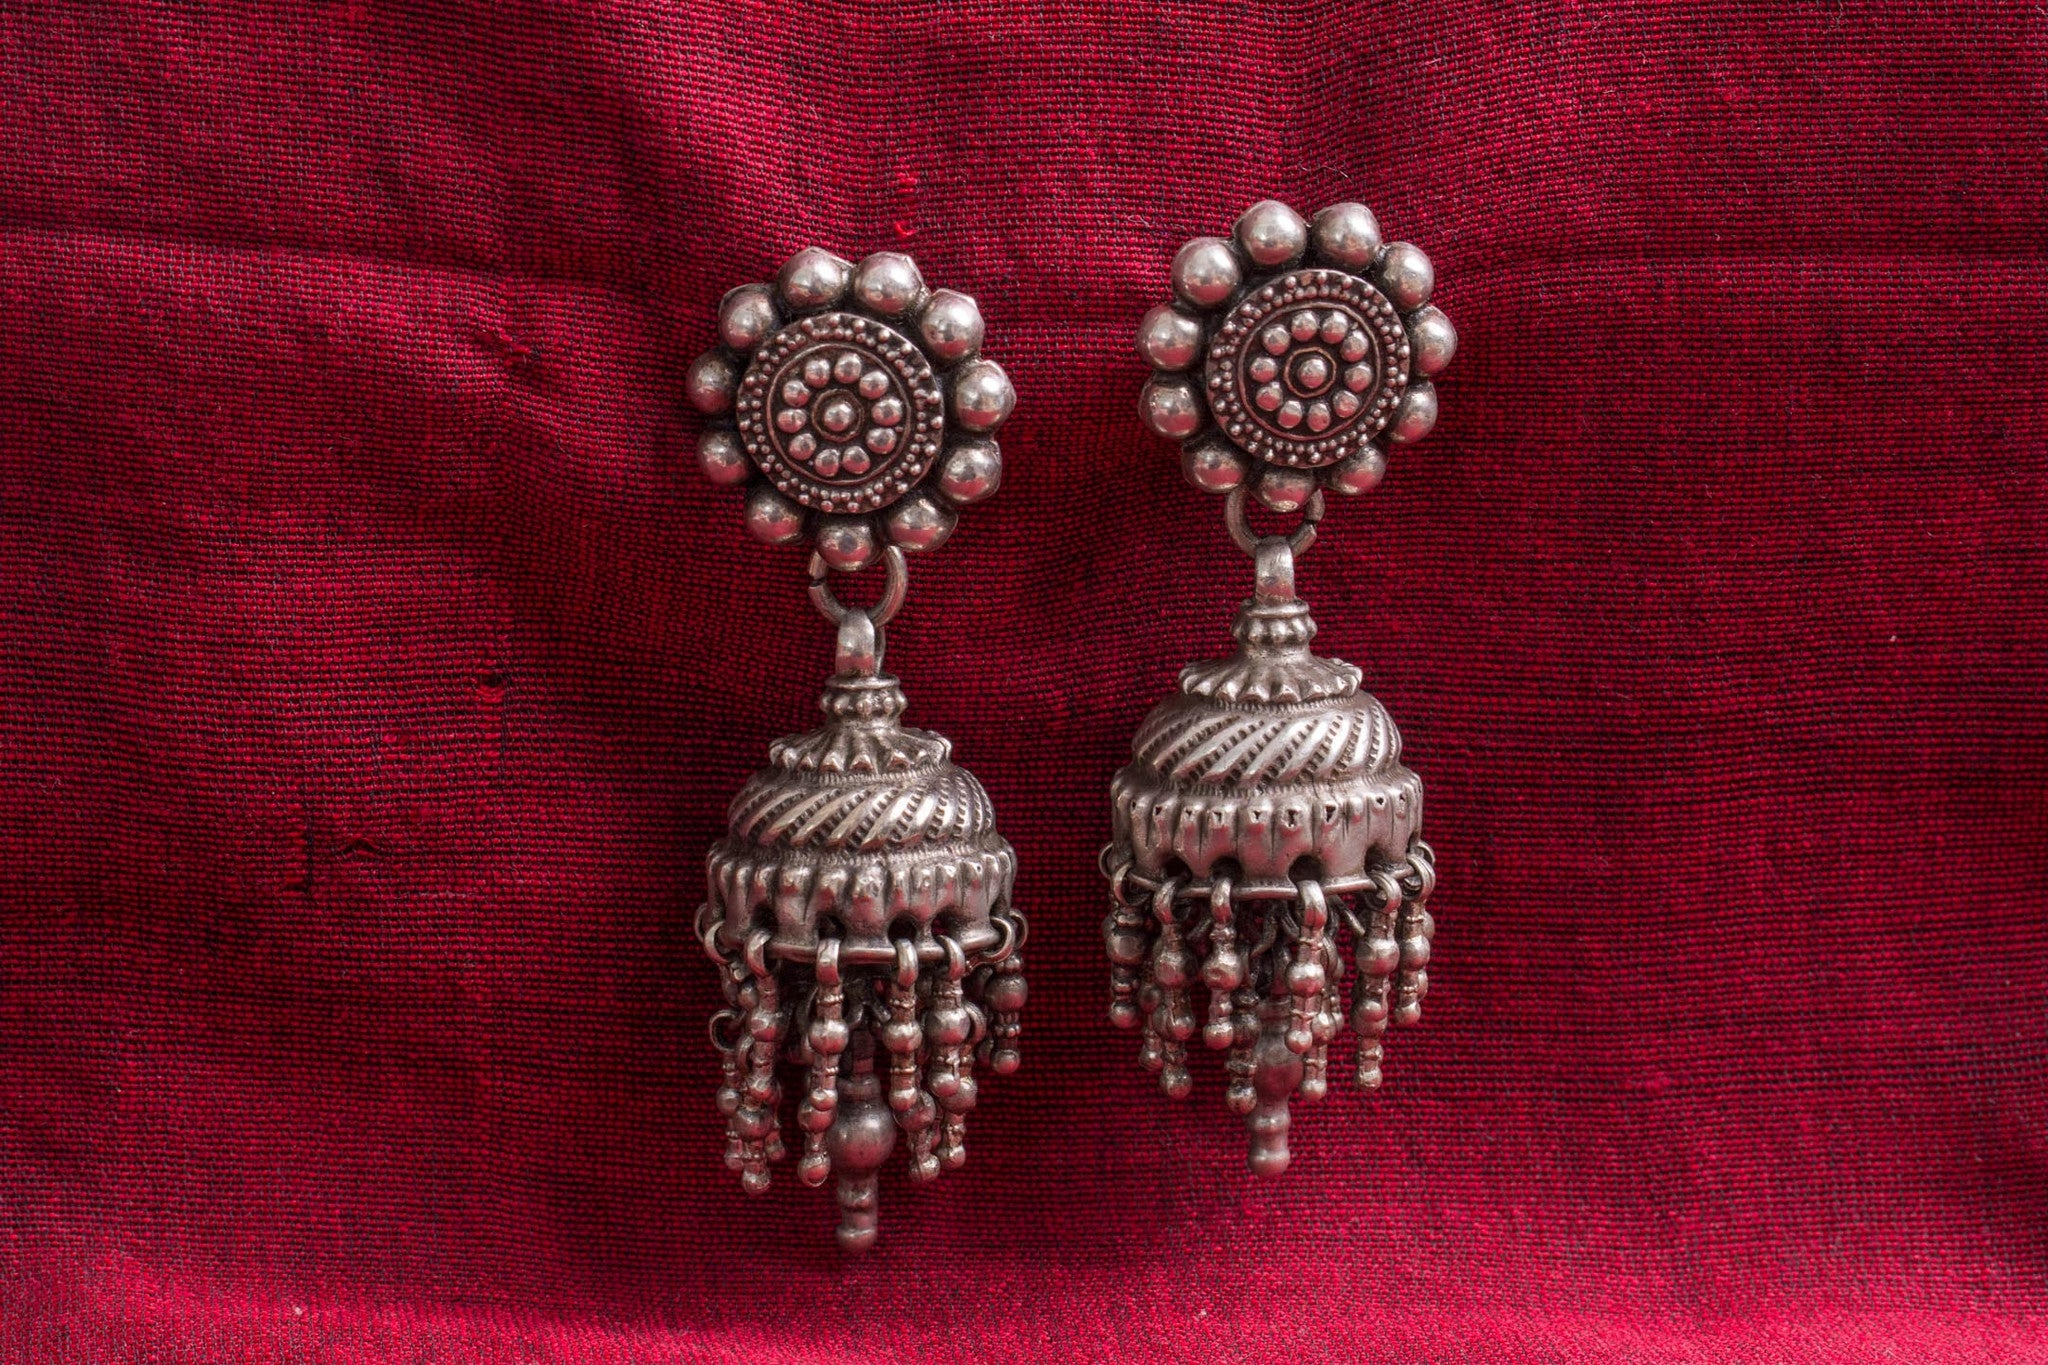 20a514-silver-amrapali-earrings-floral-top-chandelier-embossed